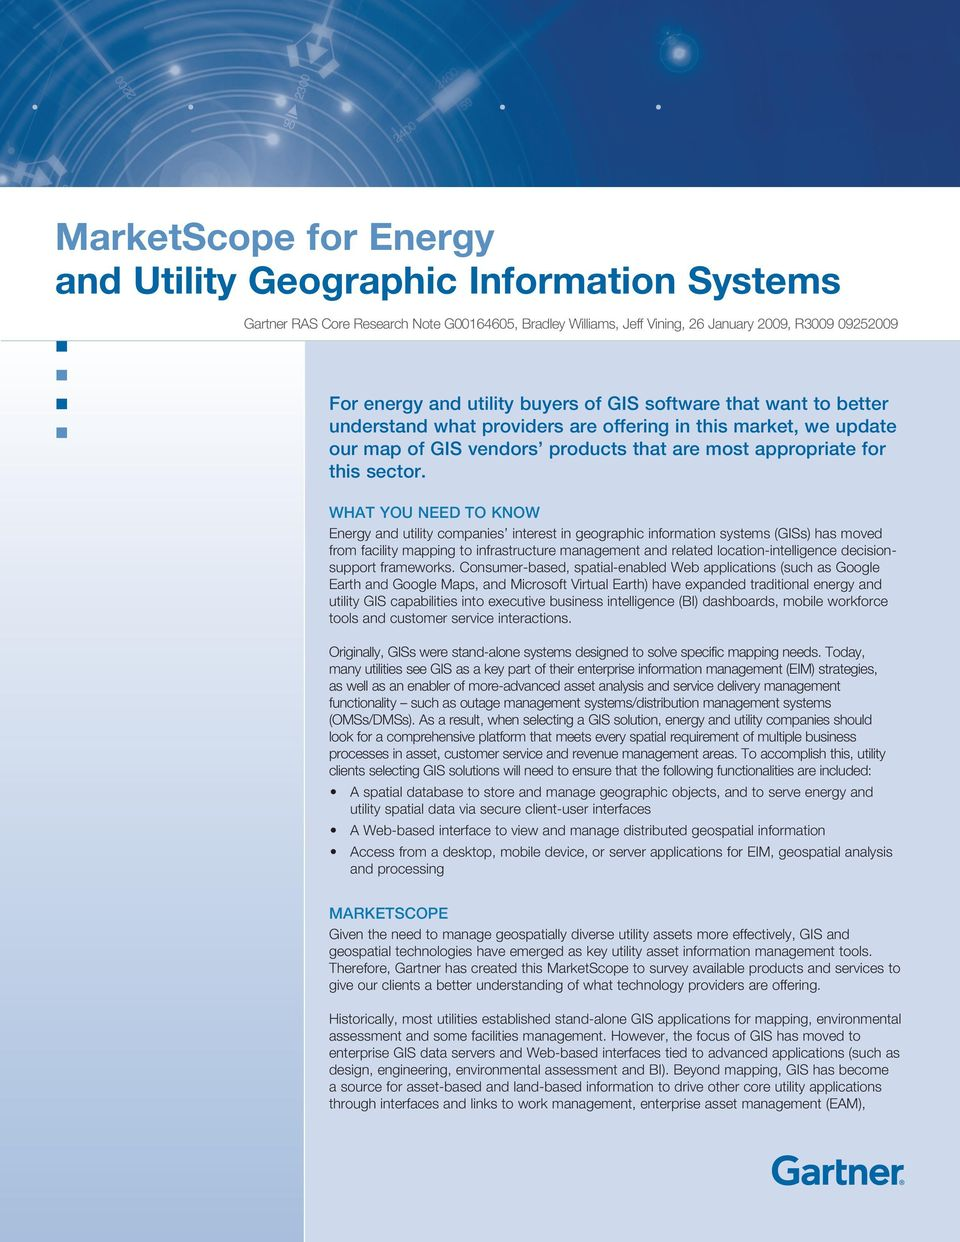 WHAT YOU NEED TO KNOW Energy and utility companies interest in geographic information systems (GISs) has moved from facility mapping to infrastructure management and related location-intelligence